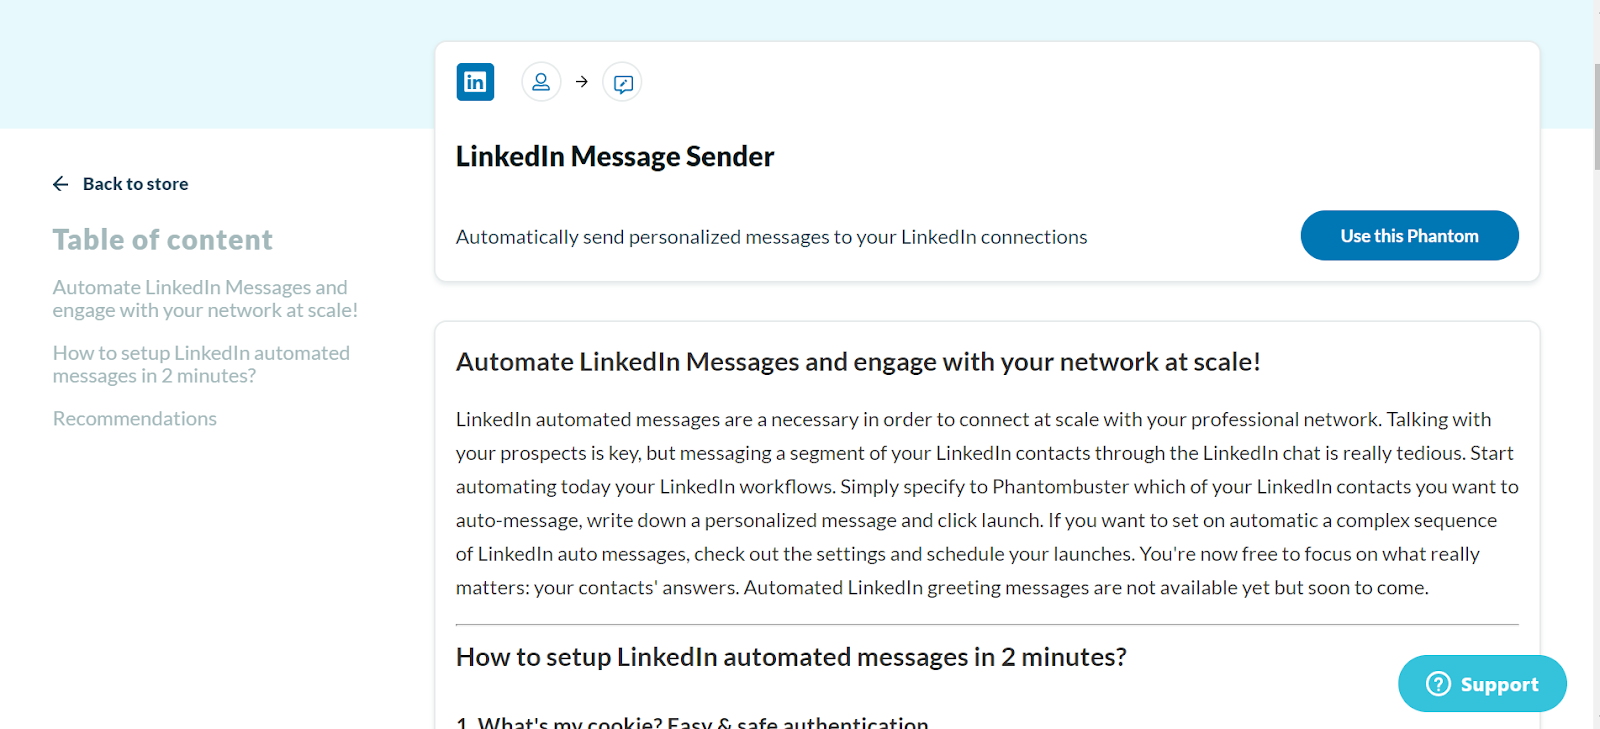 linkedin message sender